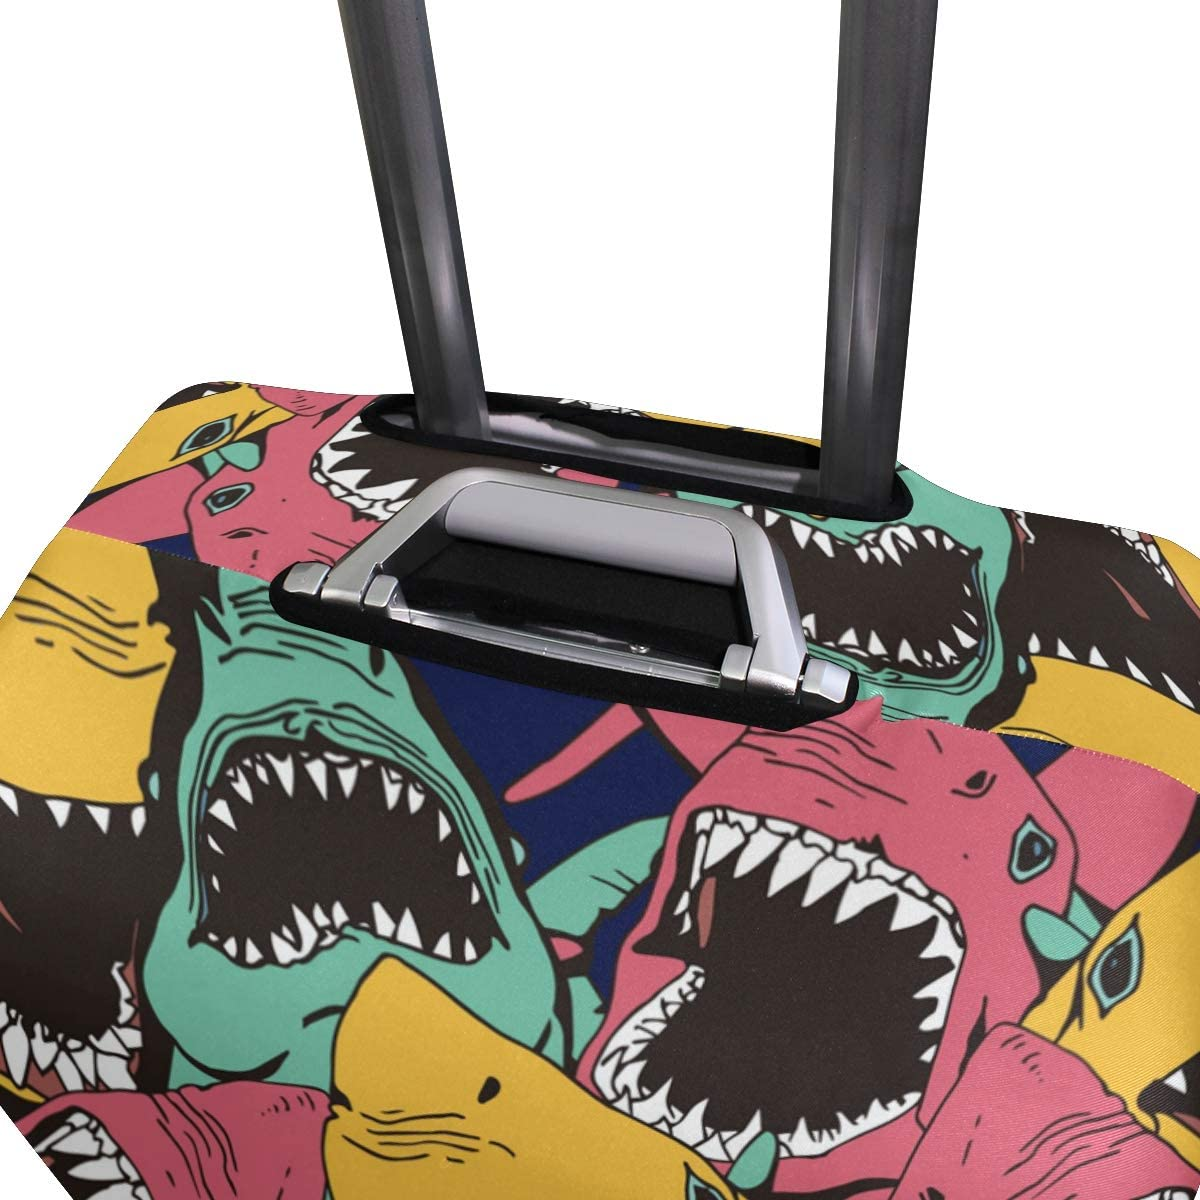 Baggage Covers Terrible Shark Green Pink Yellow Pattern Washable Protective Case